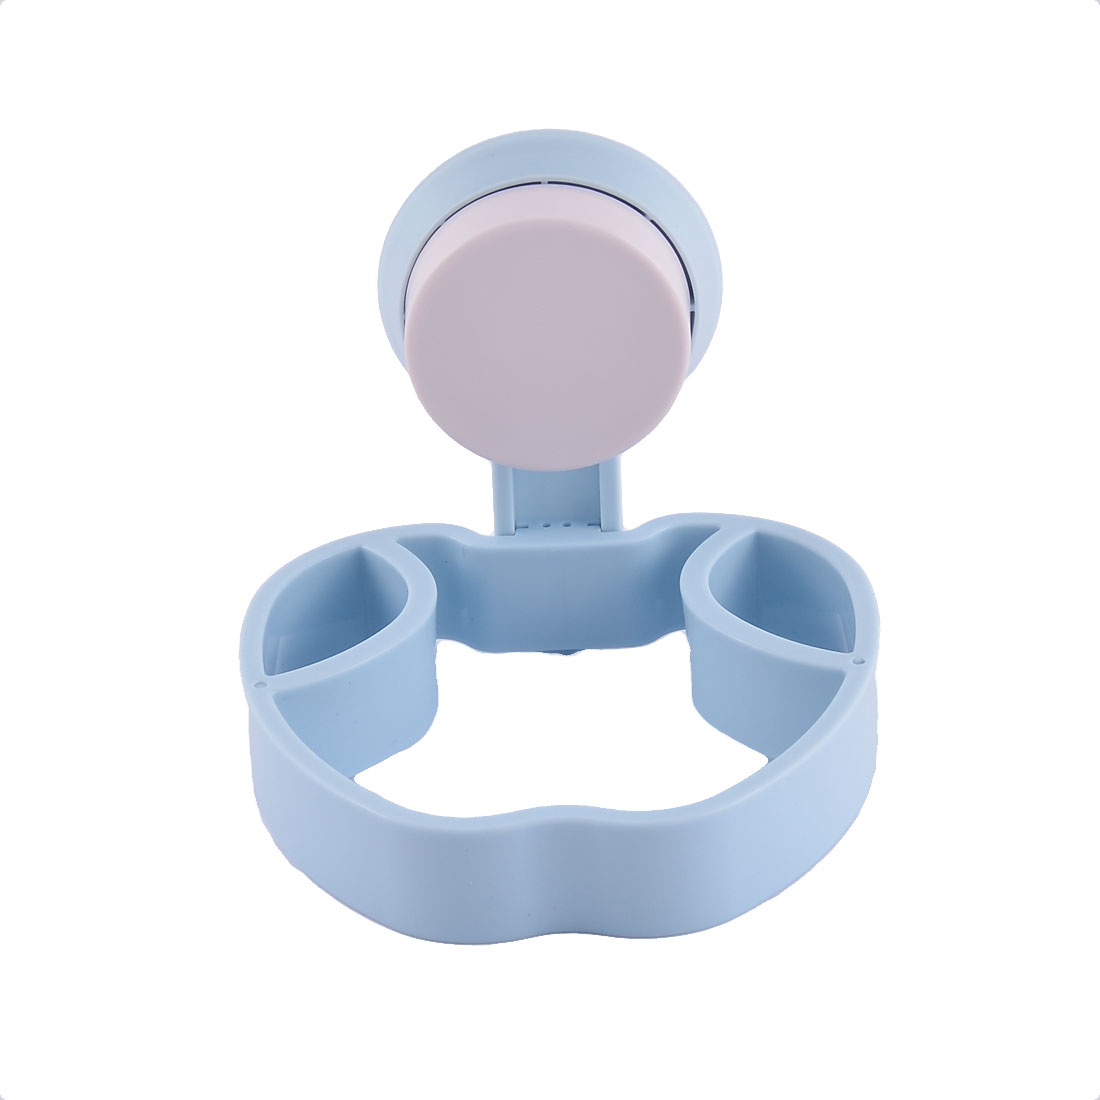 Household Home Plastic Wall Suction Cup Hair Dryer Hanger Holder Storage Blue